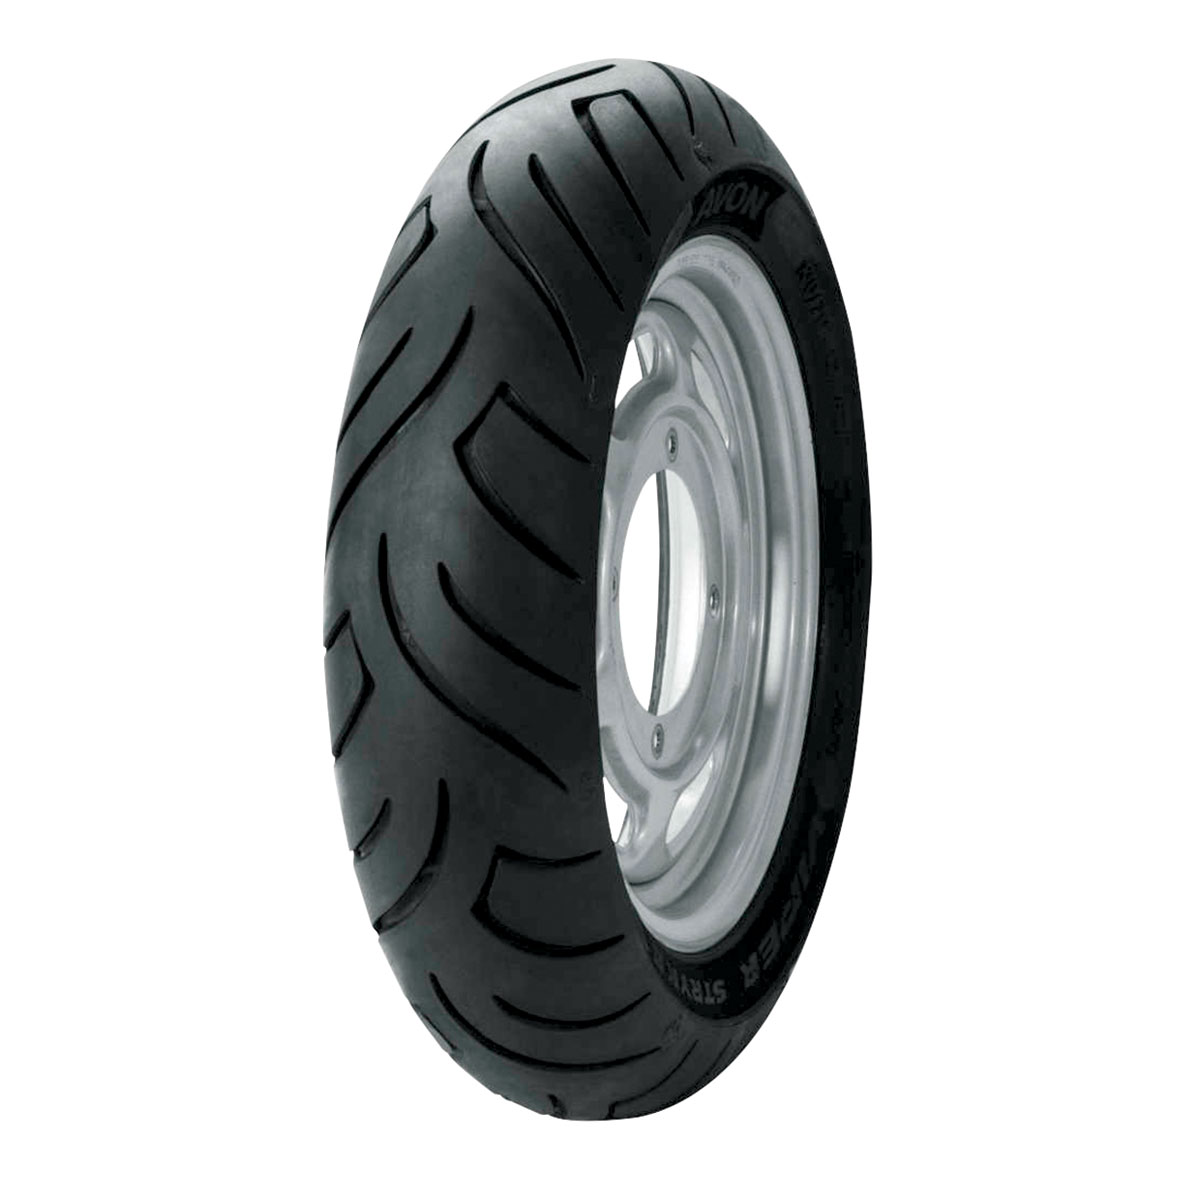 Avon AM63 Viper Stryke 120/70-12 Scooter Tire